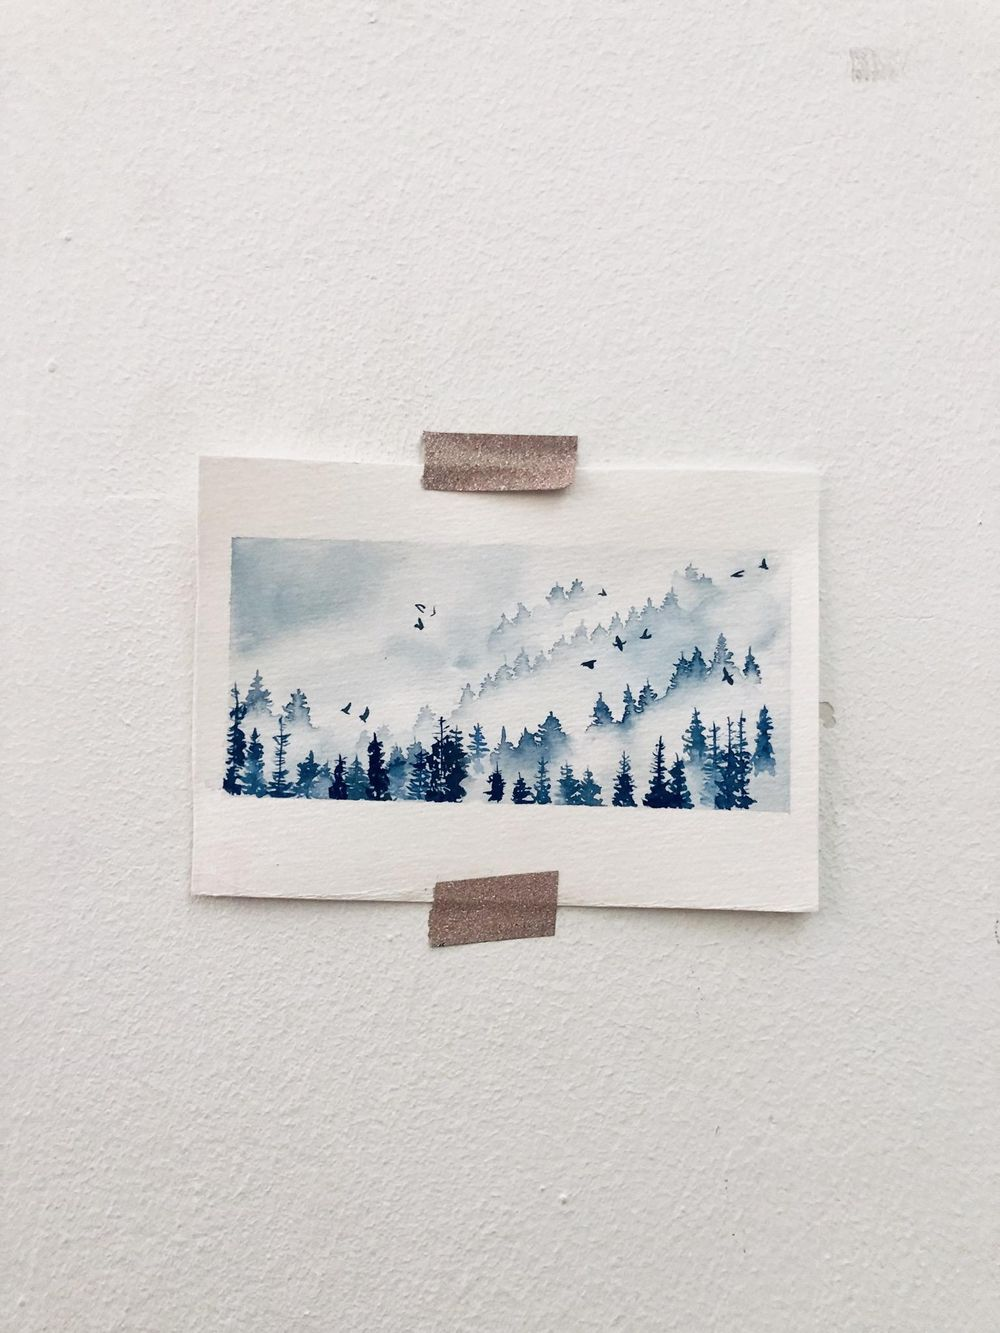 Nadia's misty pines - image 1 - student project